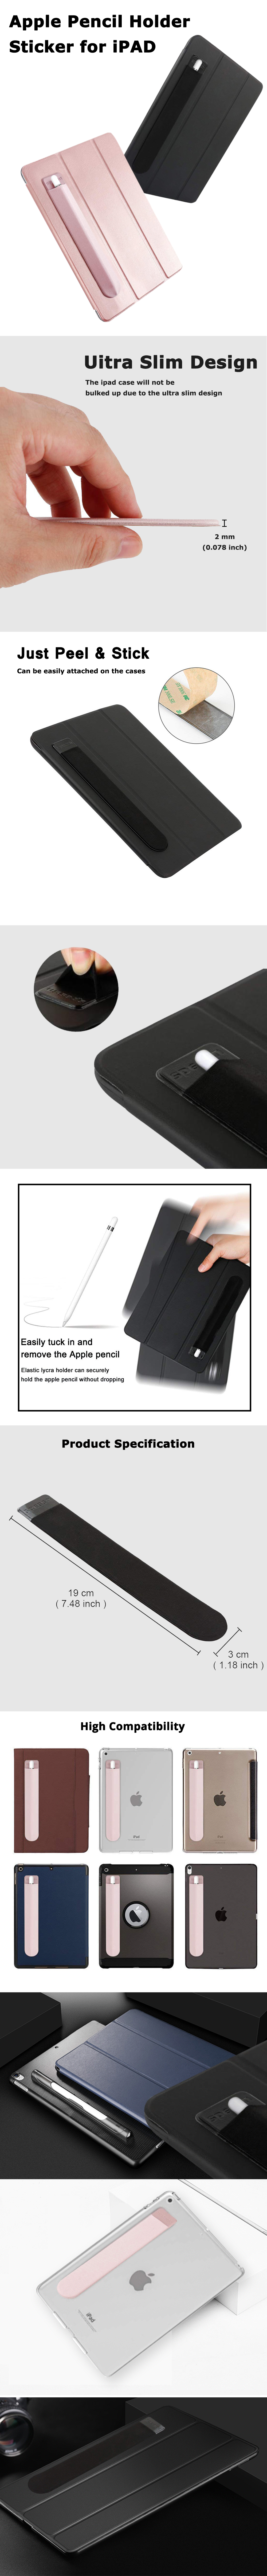 iPad Pro Pencil Holder Case Stylus Sticker Holder Apple Pen Pencil Holder Case for ipad Elastic Adhesive Protective Sleeve 6